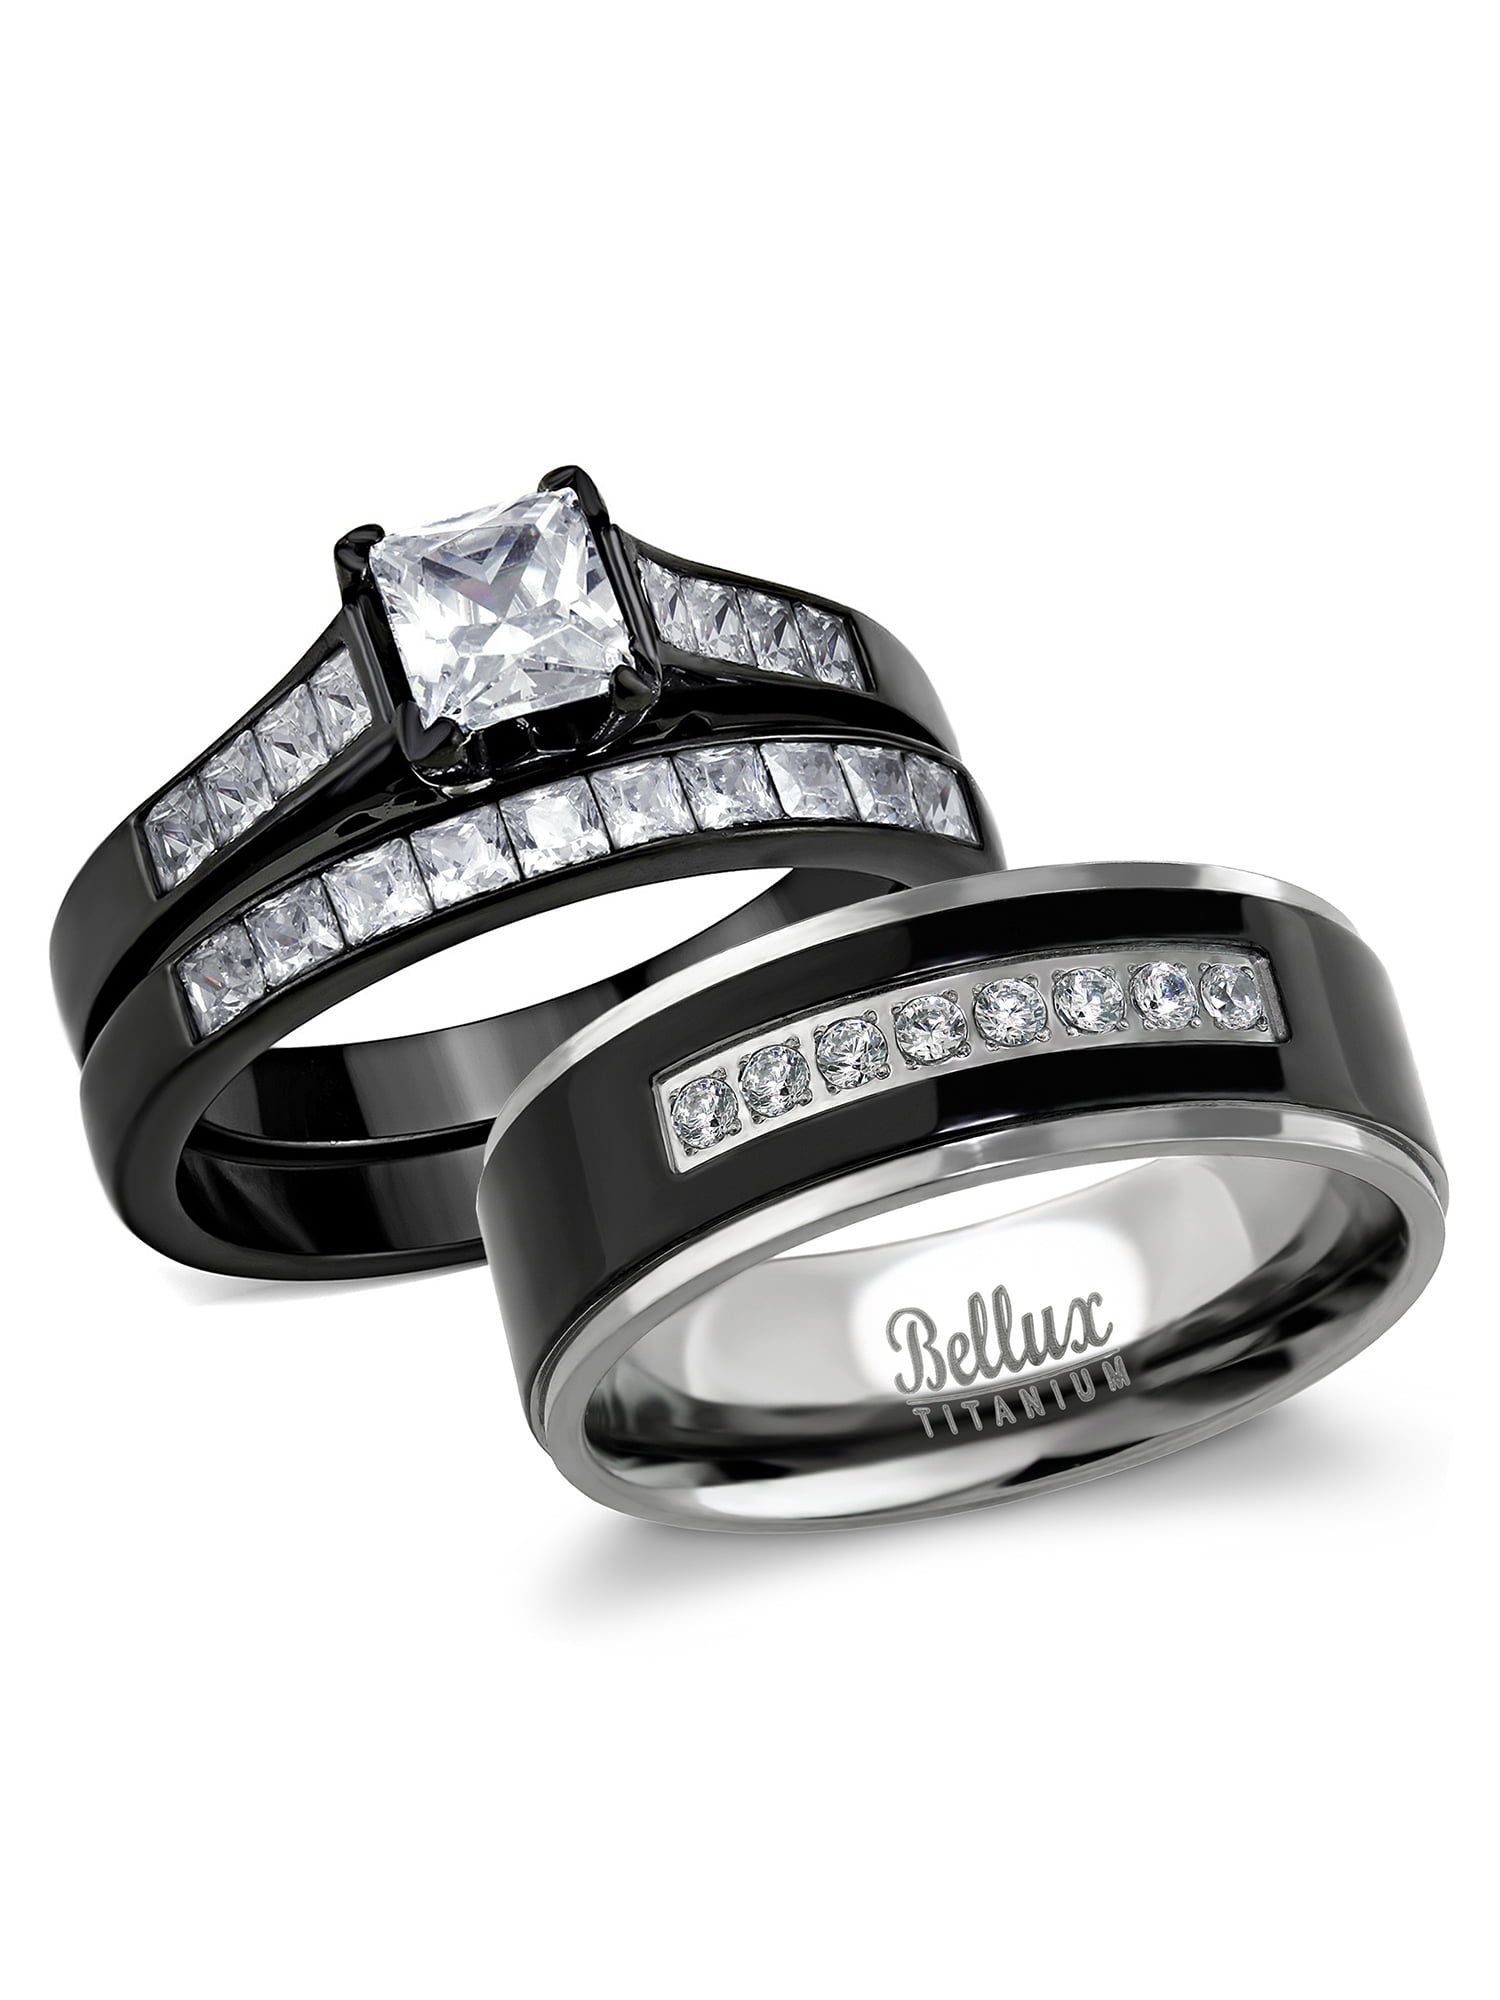 It is just an image of Bellux Style - His and Hers Wedding Ring Sets Couples Black Stainless Steel Cubic Zirconia Bridal Sets Wedding Rings - Walmart.com